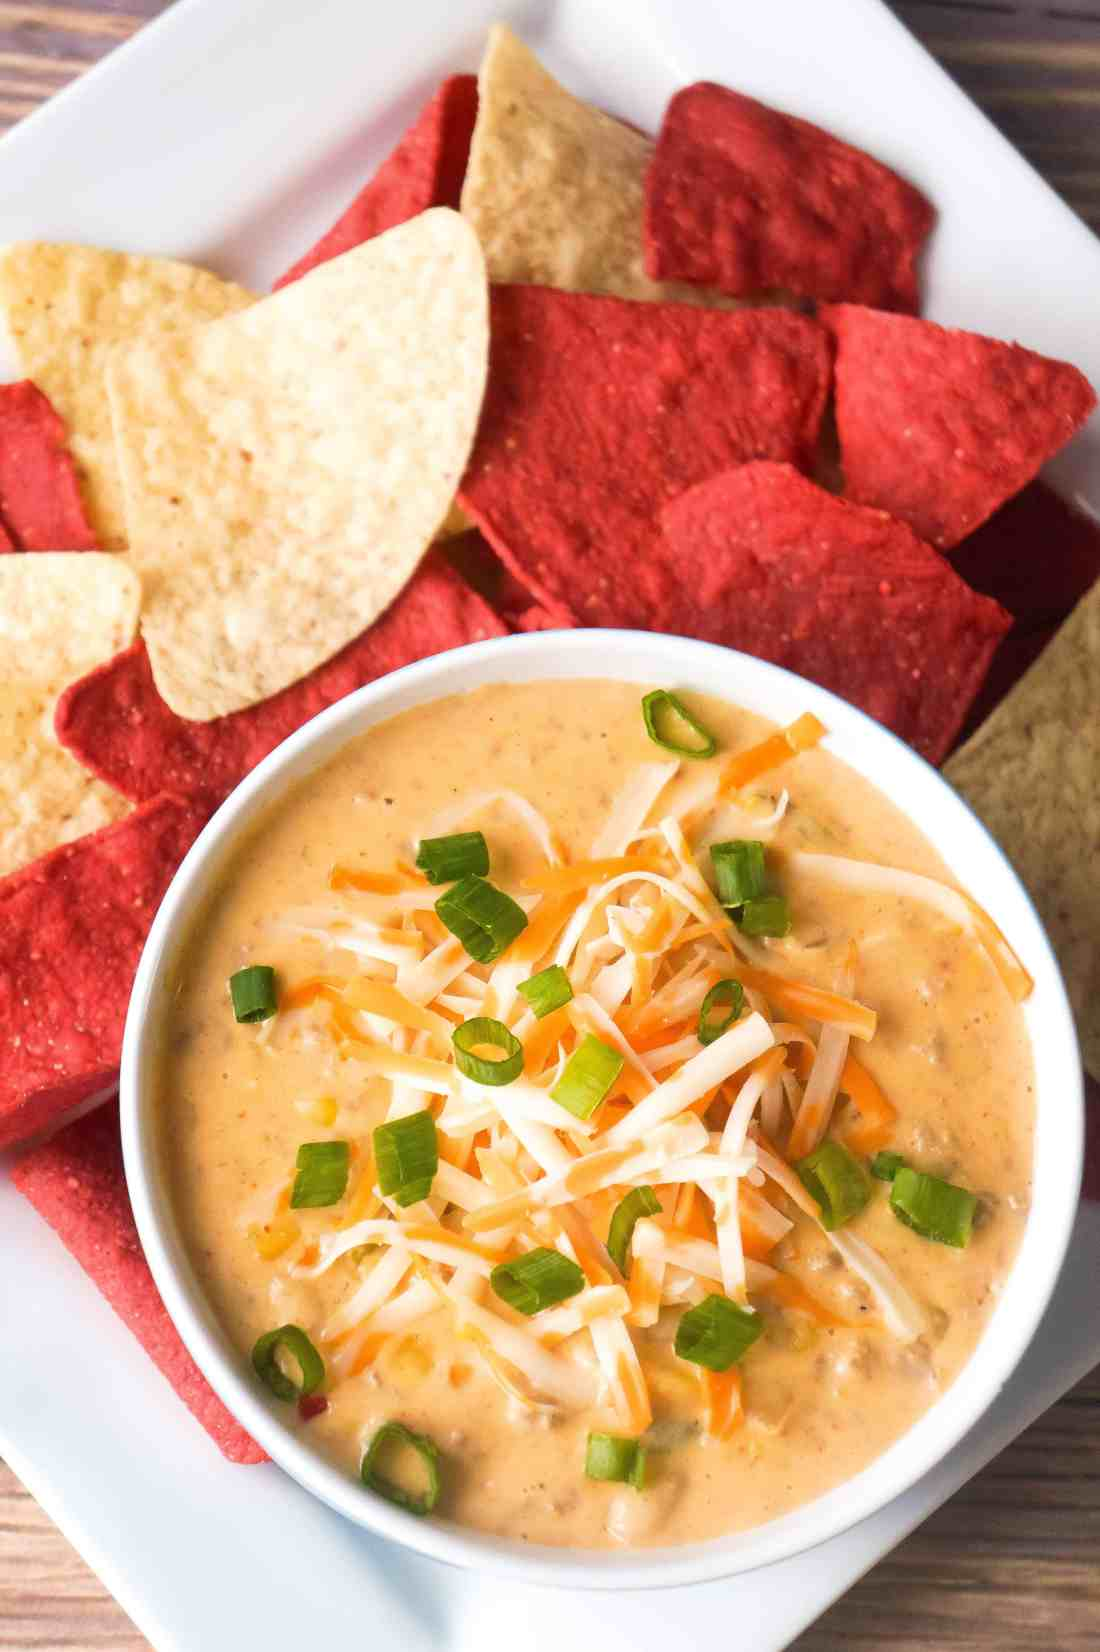 Creamy Ground Chicken Chili with tortilla chips.